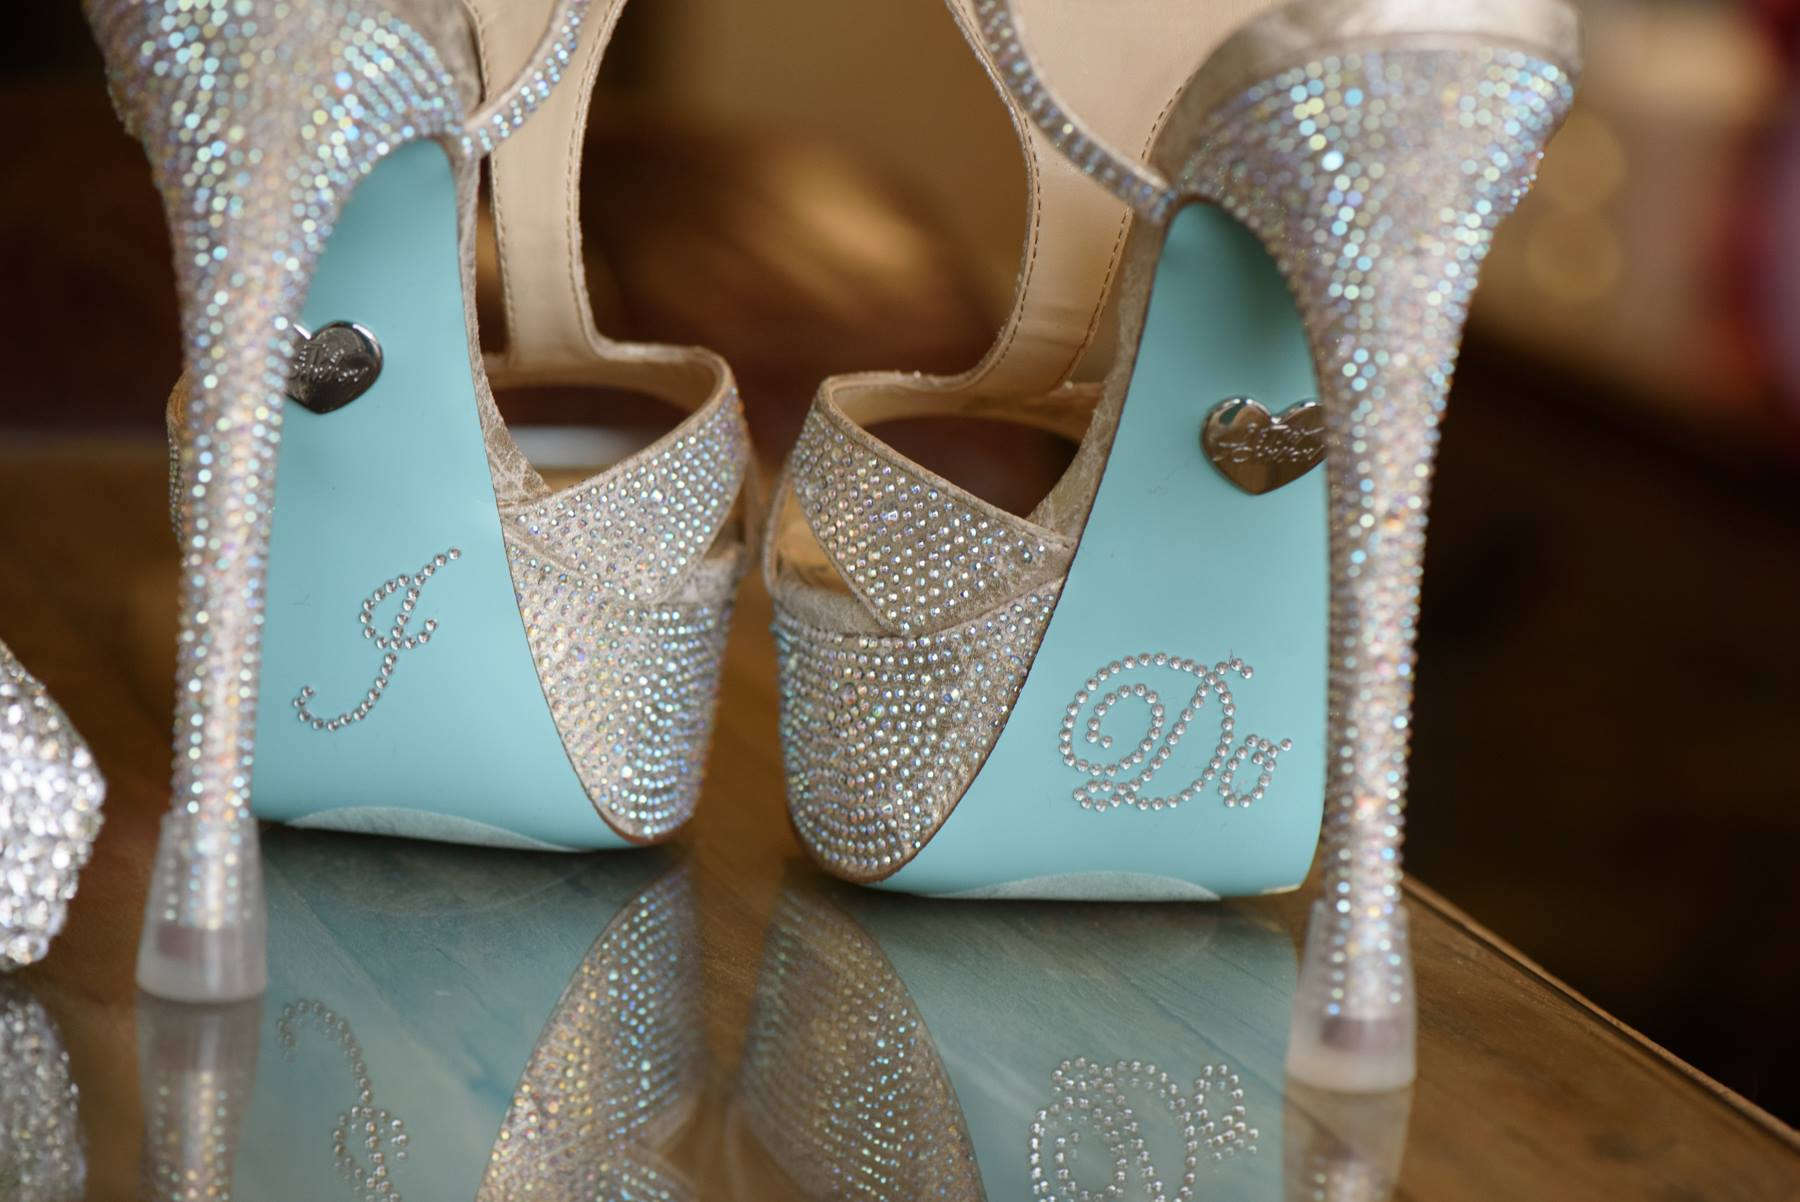 tiffany-blue-heel-bottoms.jpg